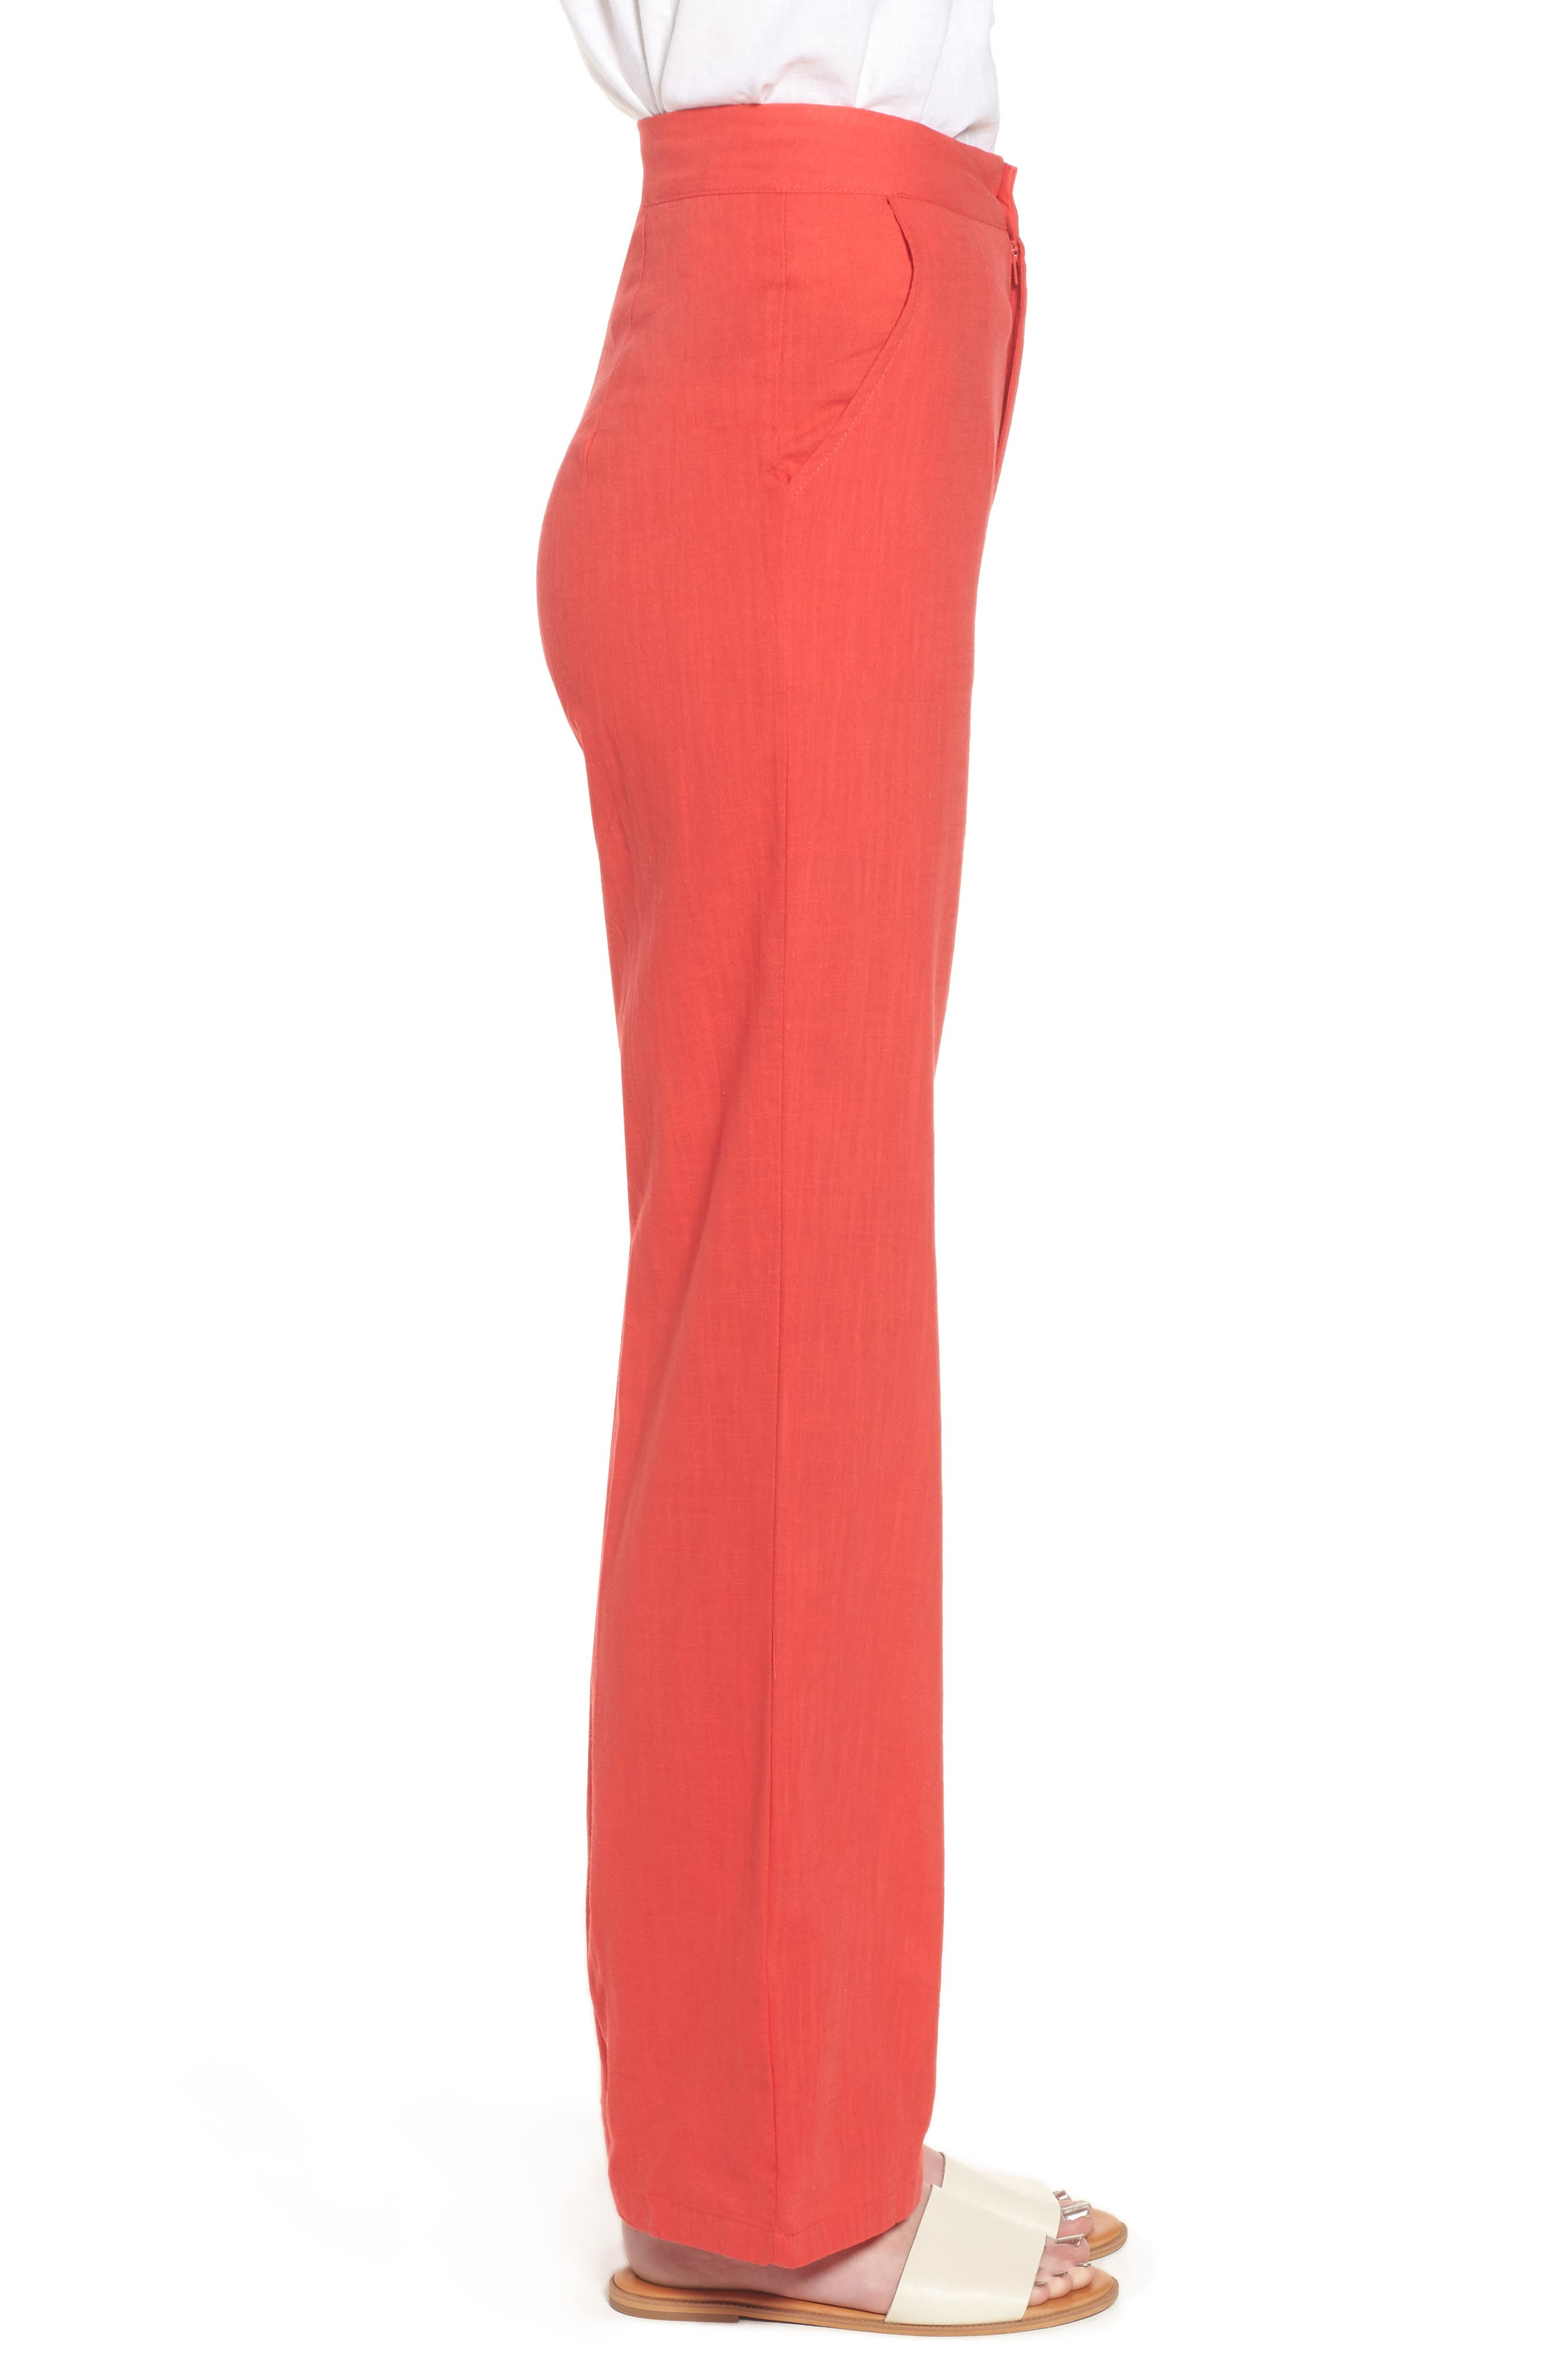 Femme Fatale High Waist Pants,                             Alternate thumbnail 3, color,